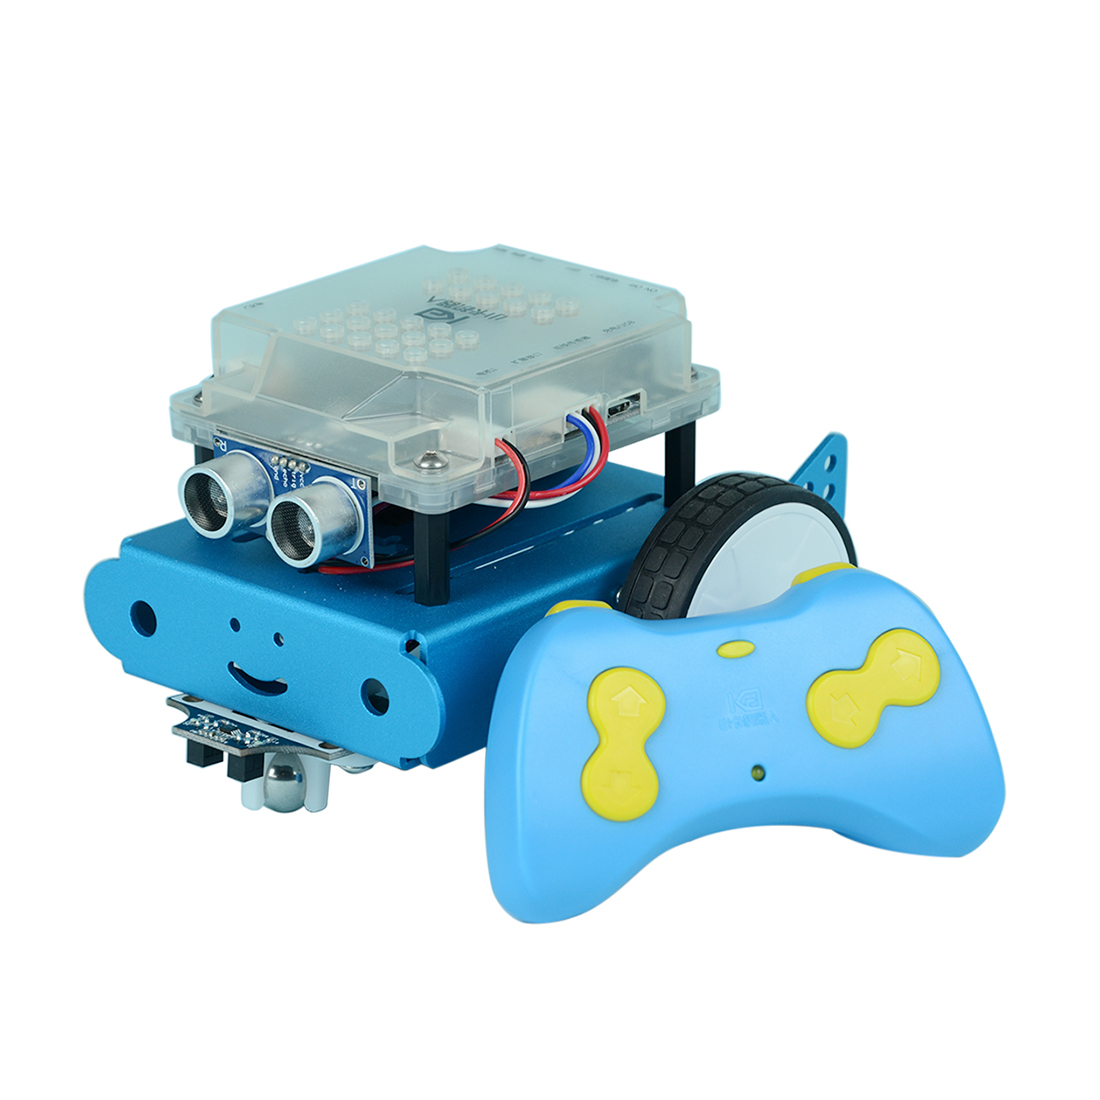 Programmable Robot DIY Obstacle Avoidance Car Graphic Programming Steam Scratch Educational Learning Kit With RC Handle